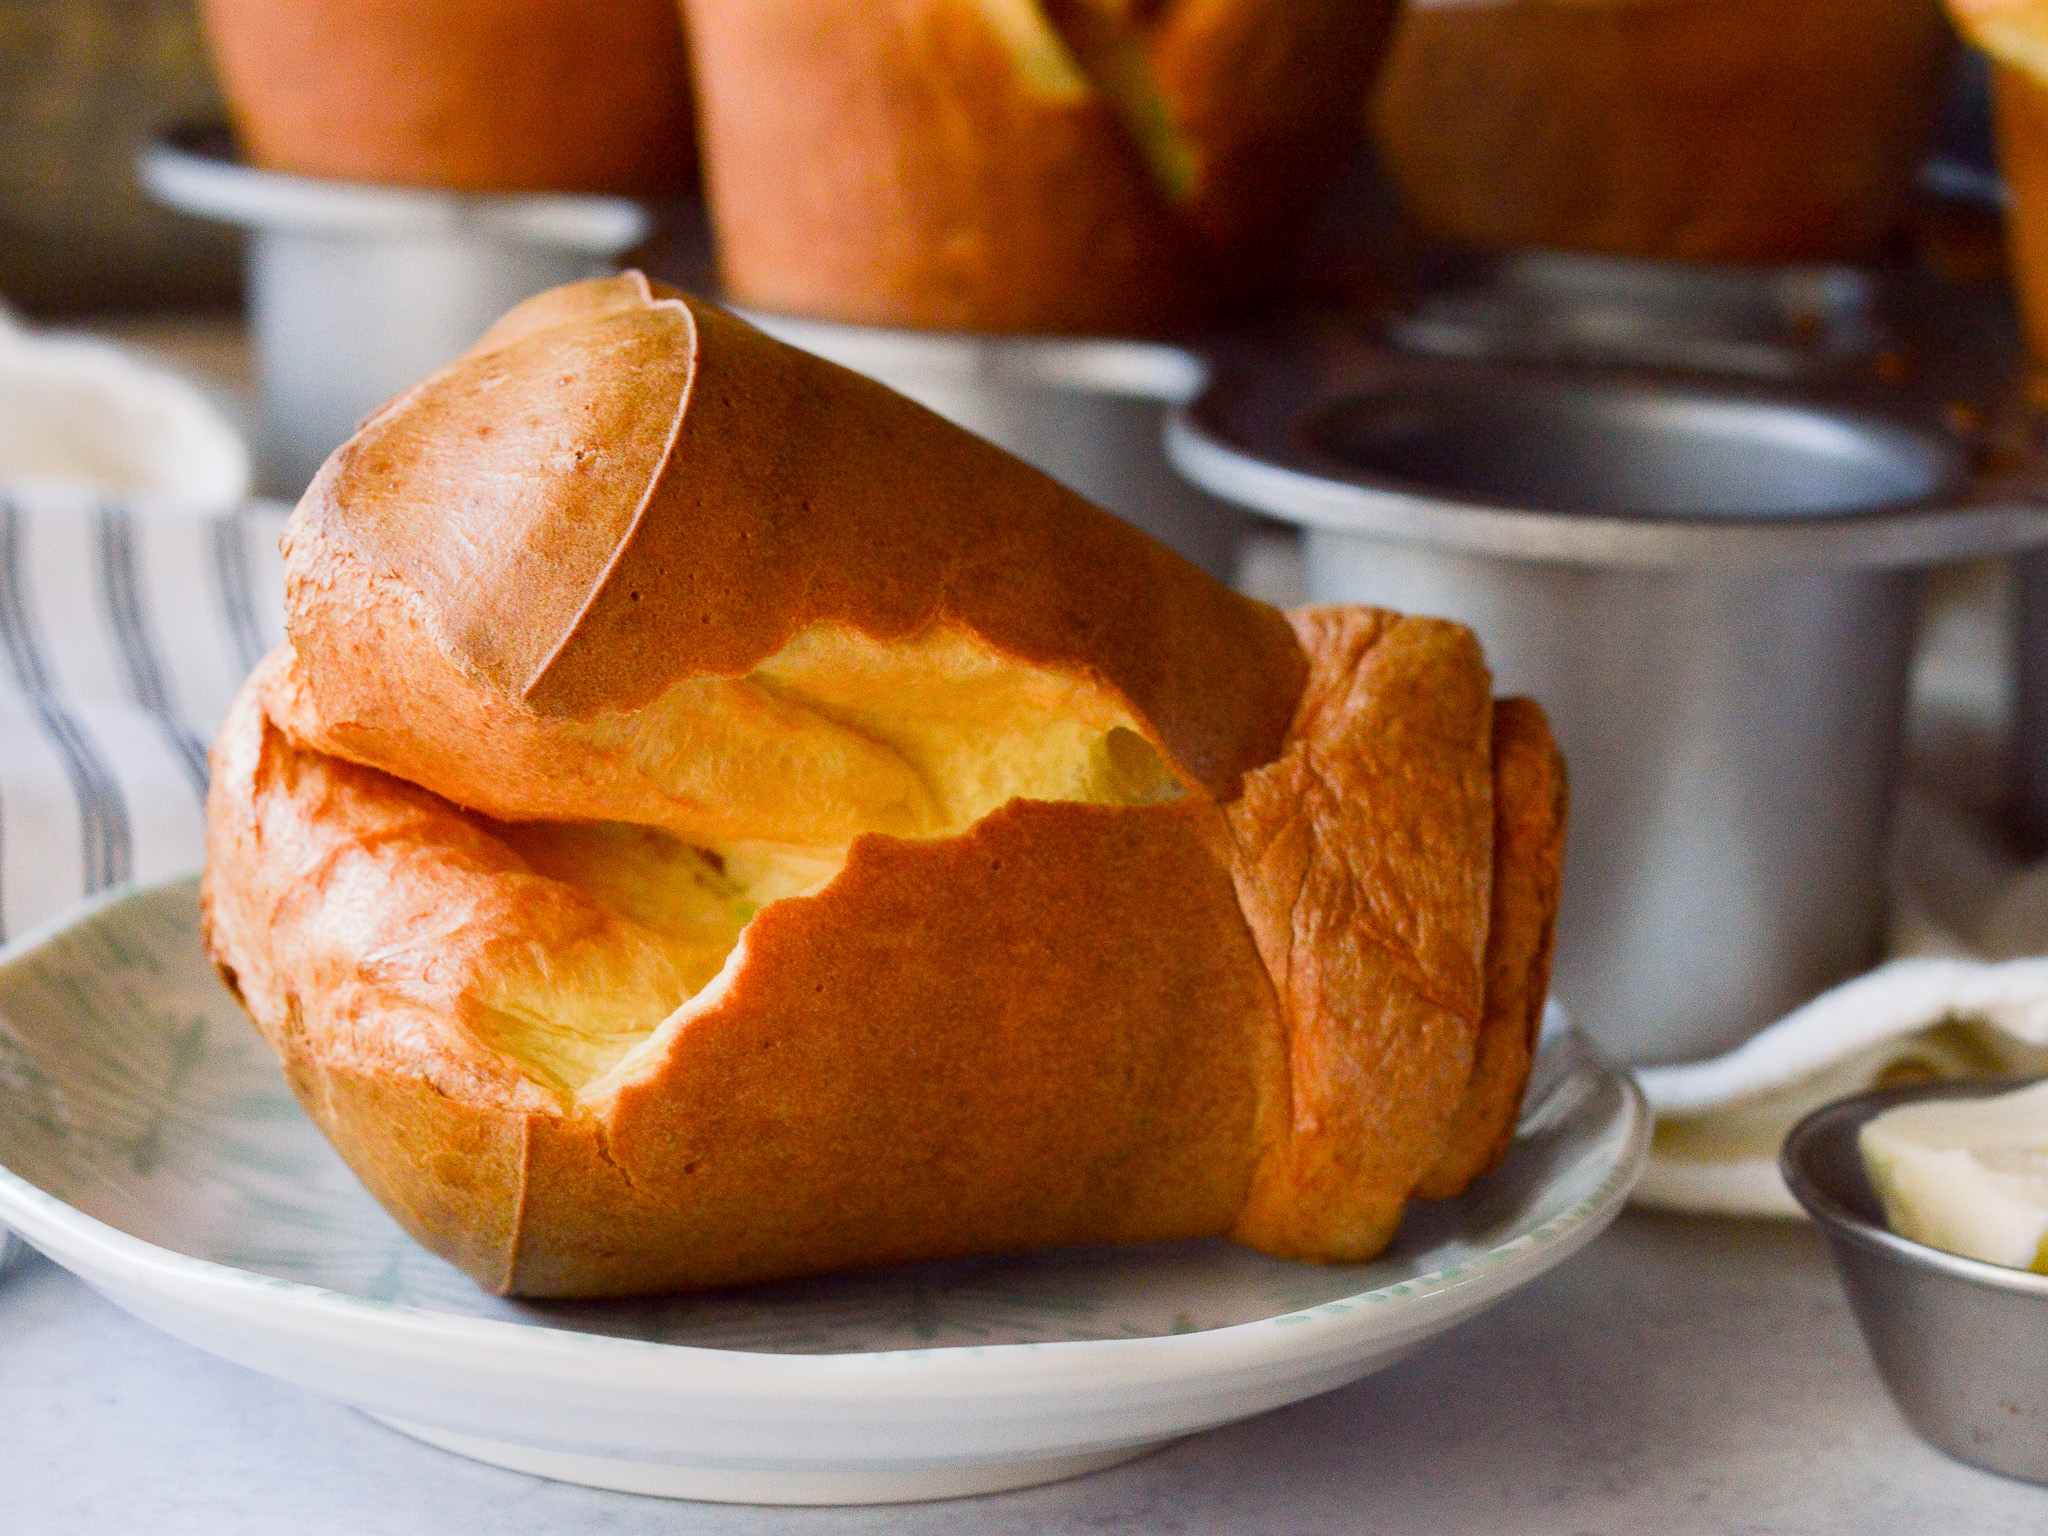 A fluffy popover made using a blender on a small plate ready to eat.